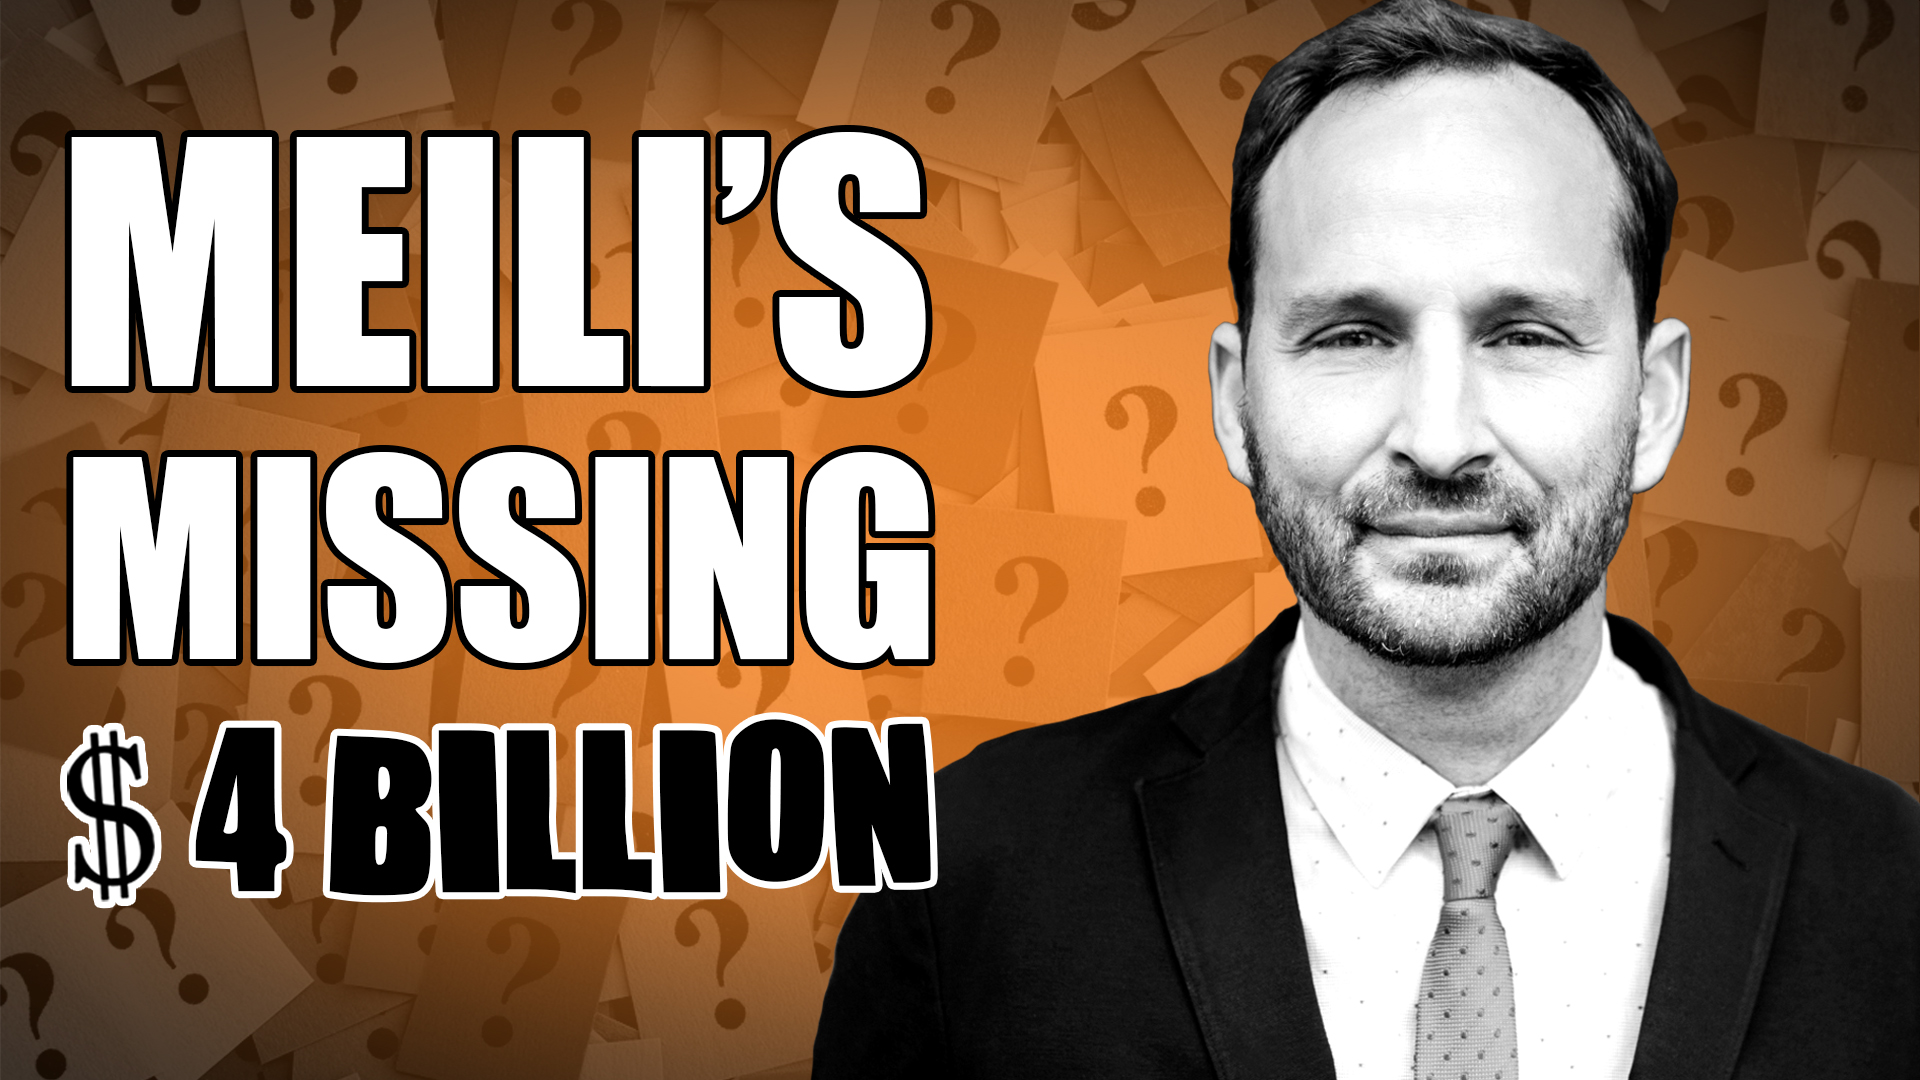 A Risk We Can't Afford: The $4 Billion Hole in Ryan Meili's Platform